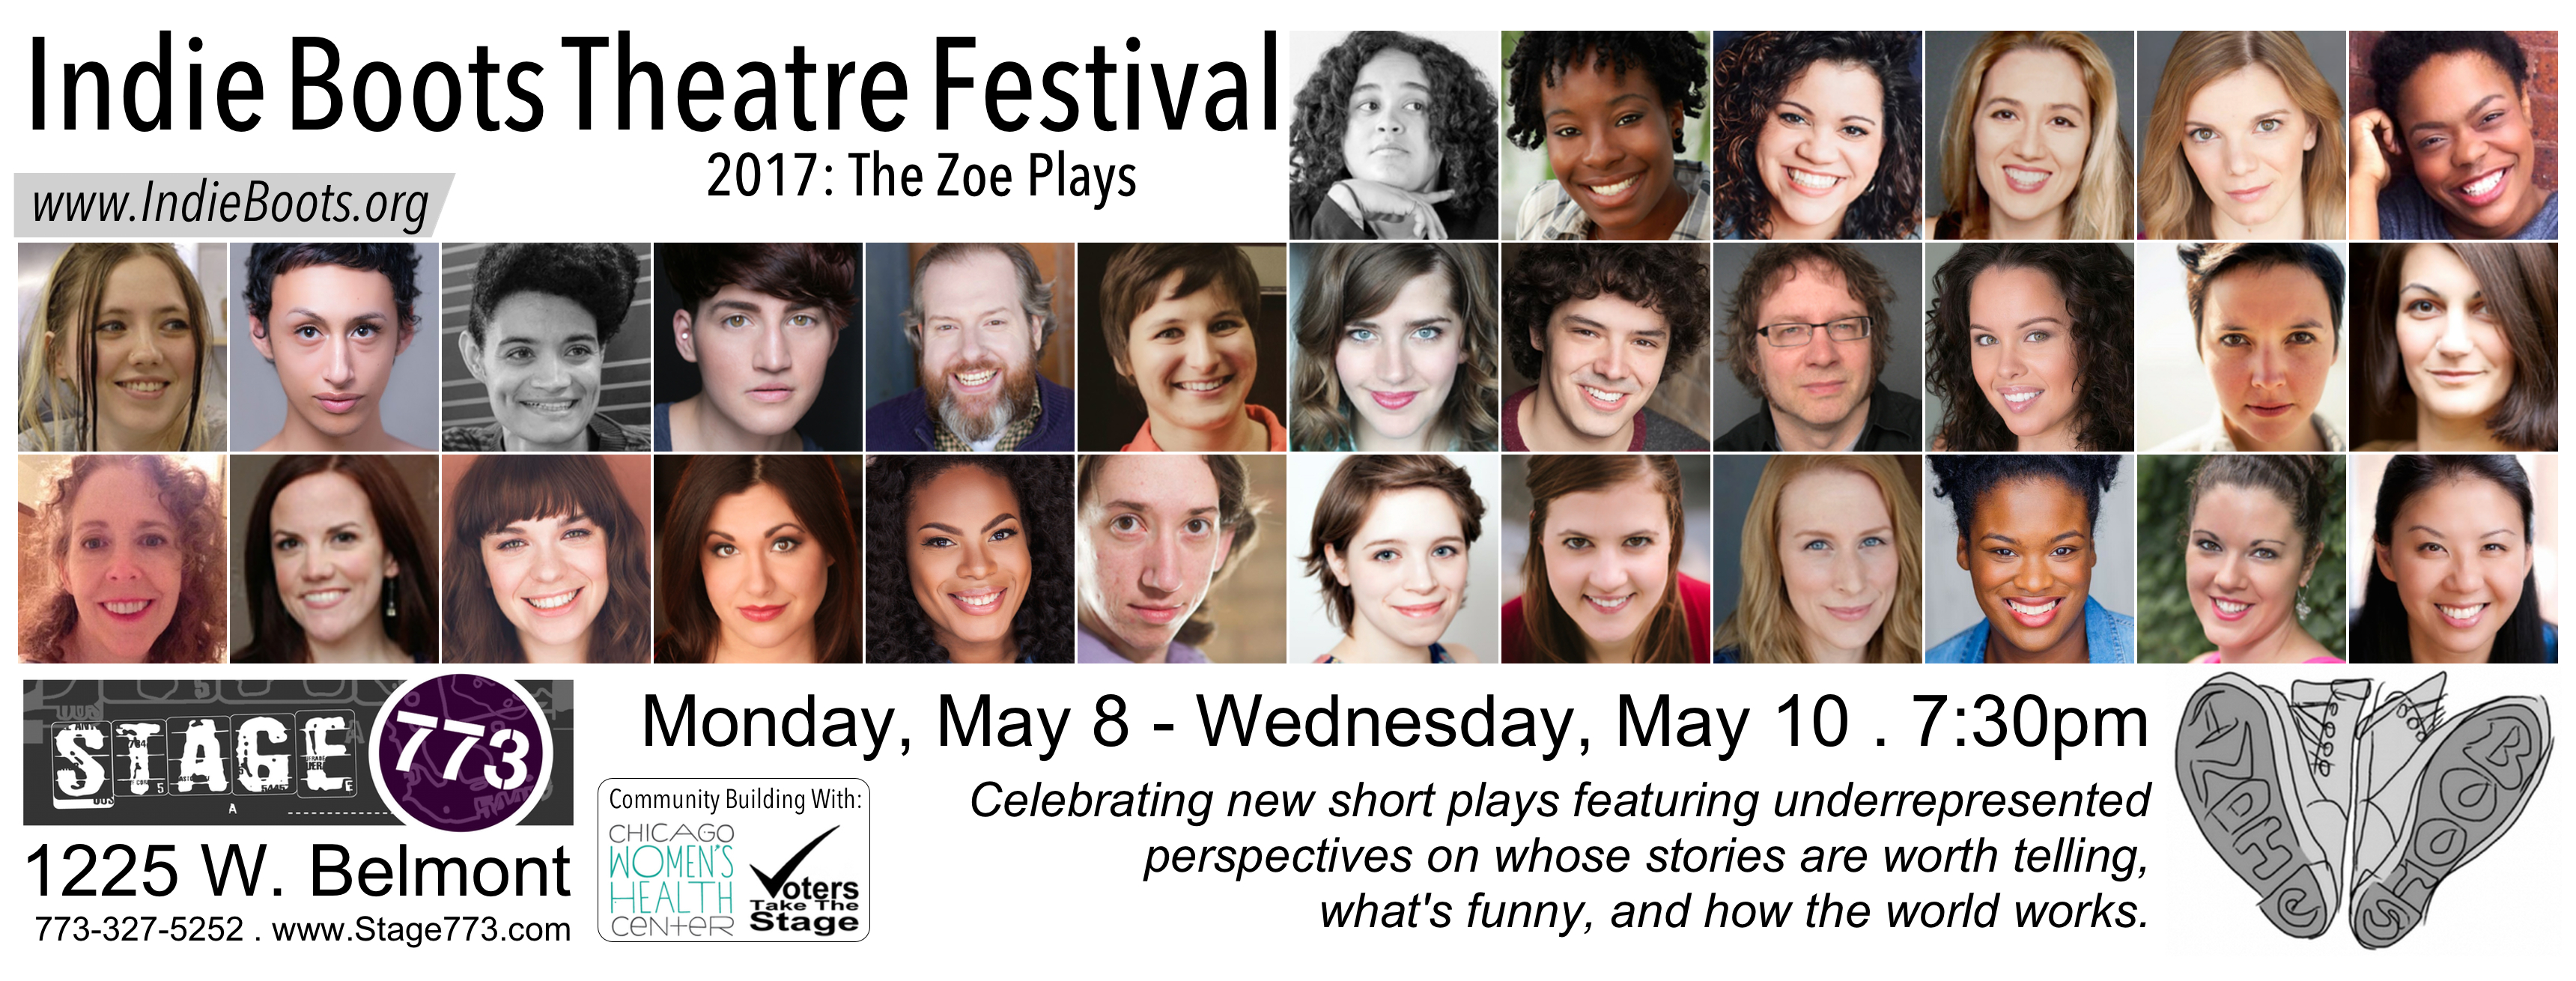 Indie Boots Theatre Festival 2017: The Zoe Plays postcard